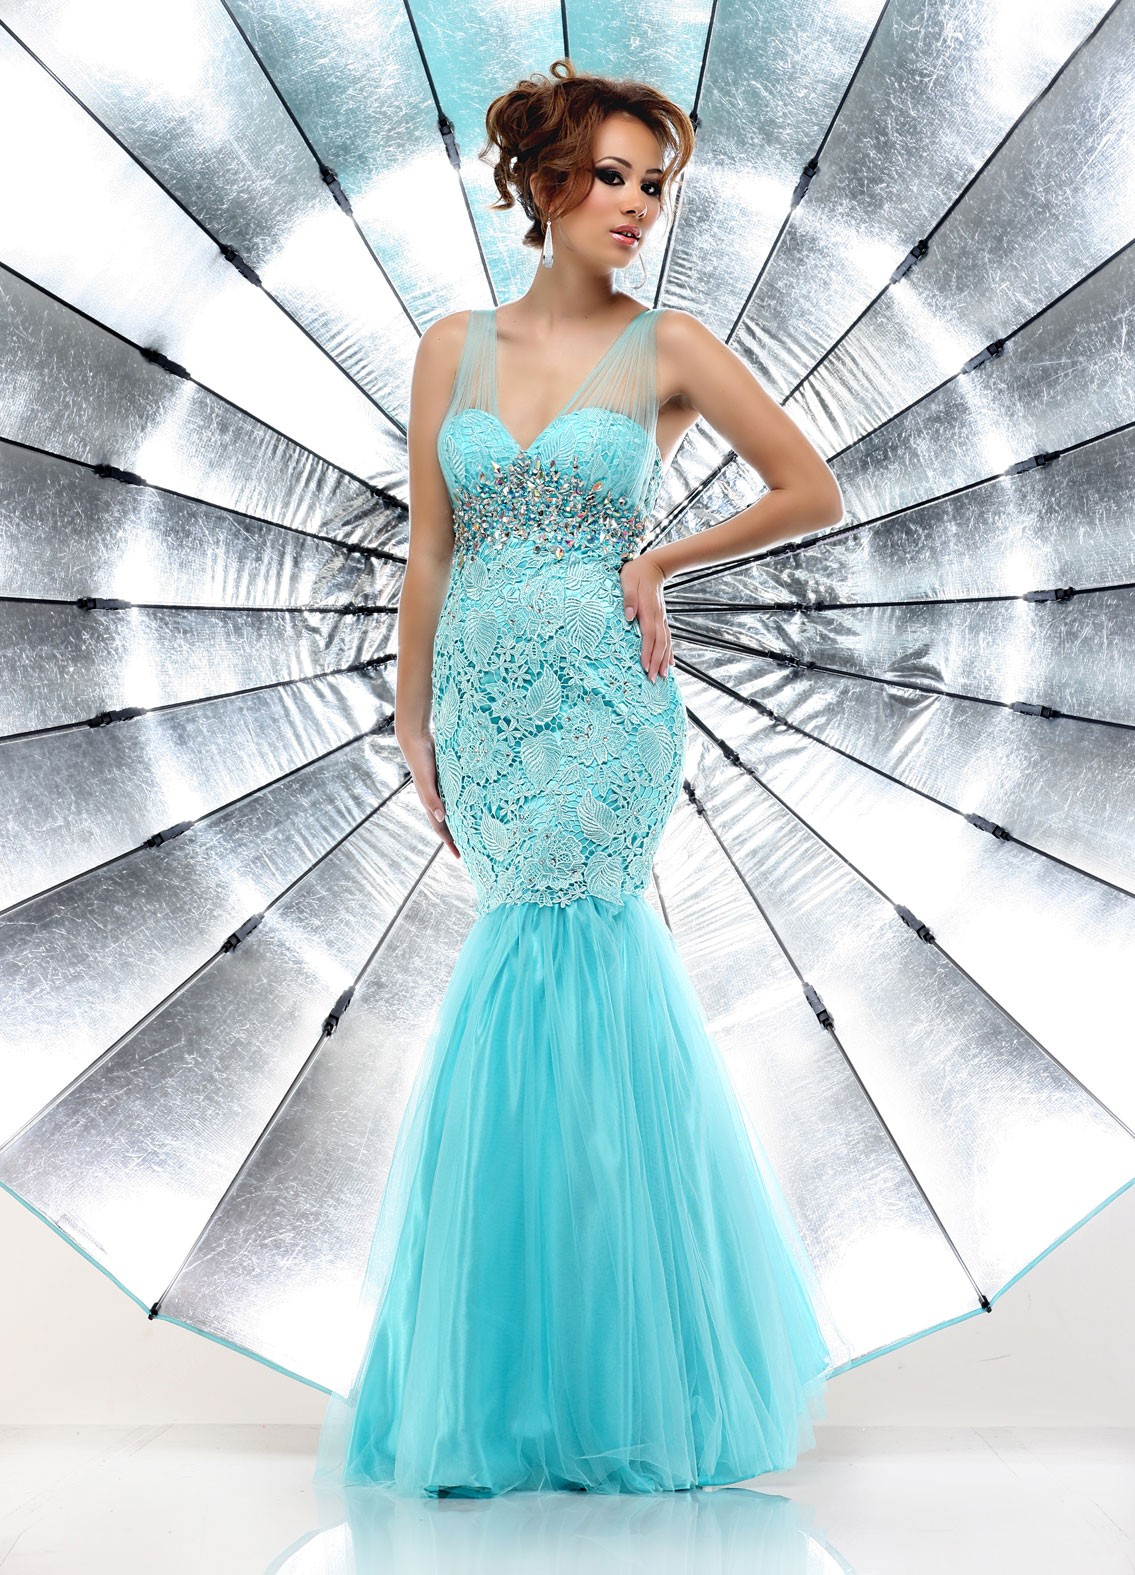 Drool Over Mermaid Prom Dresses To Steal | fashionable bridal ideas